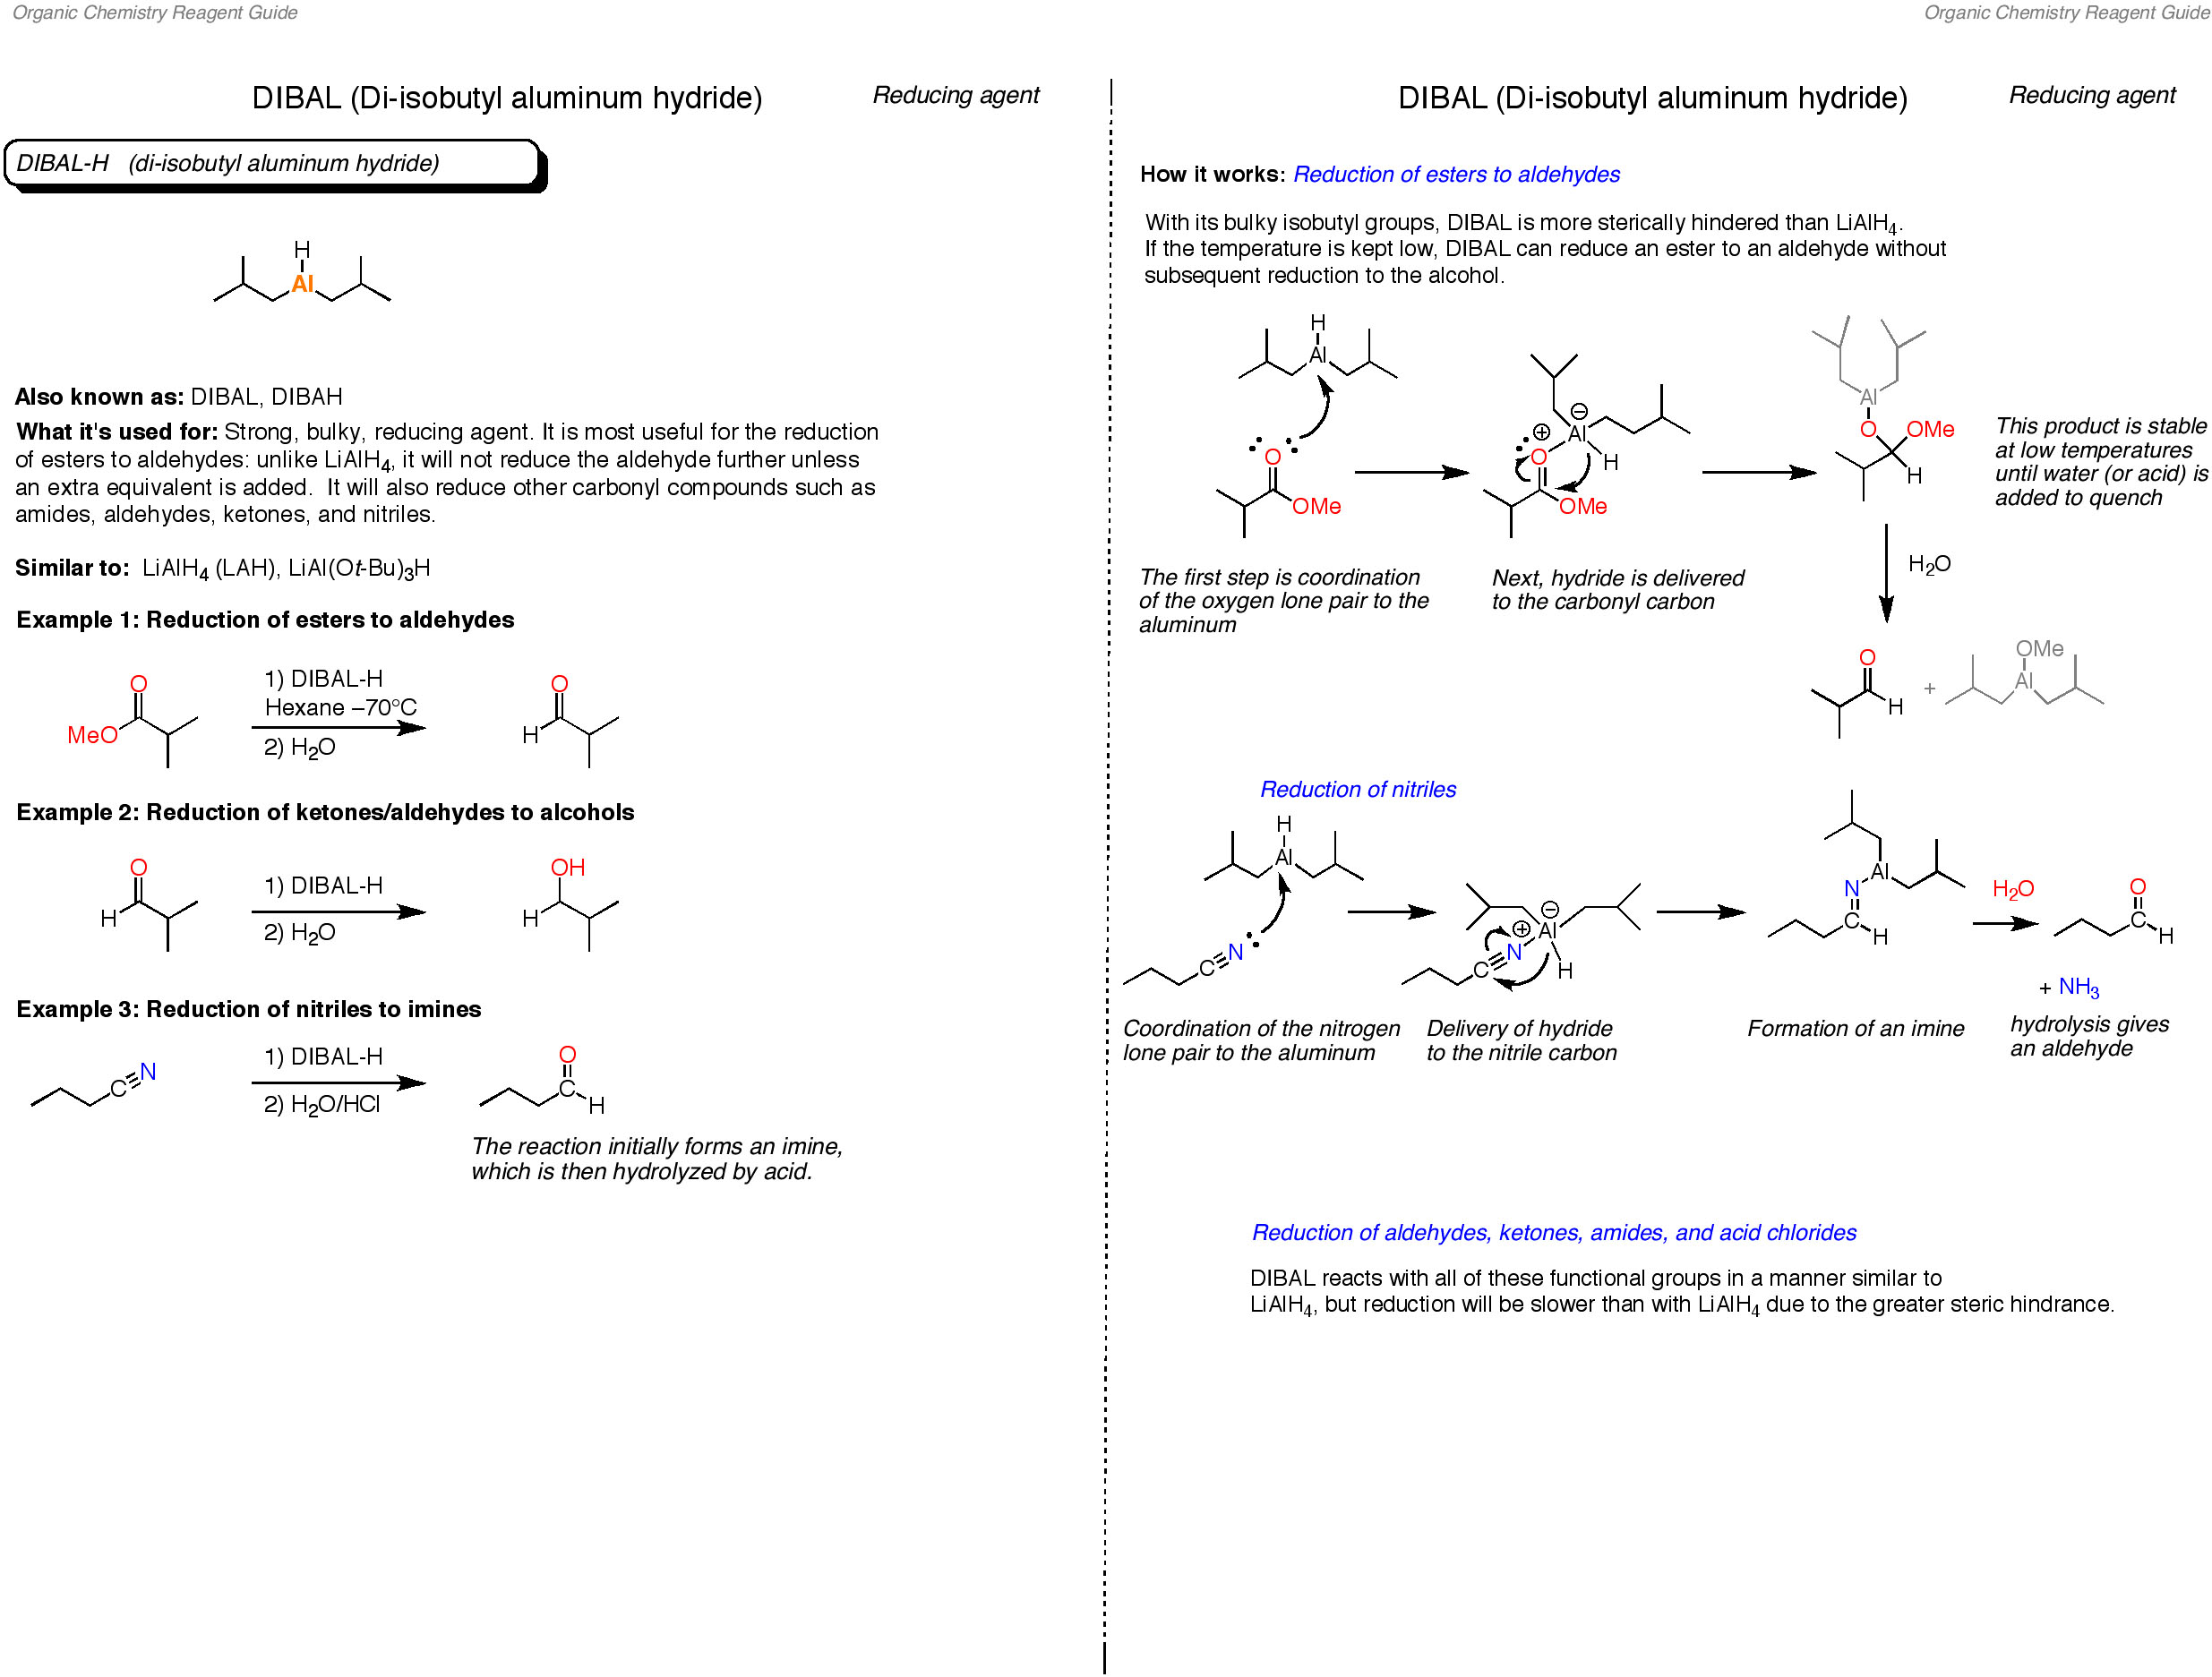 The Organic Chemistry Reagent Guide is here!